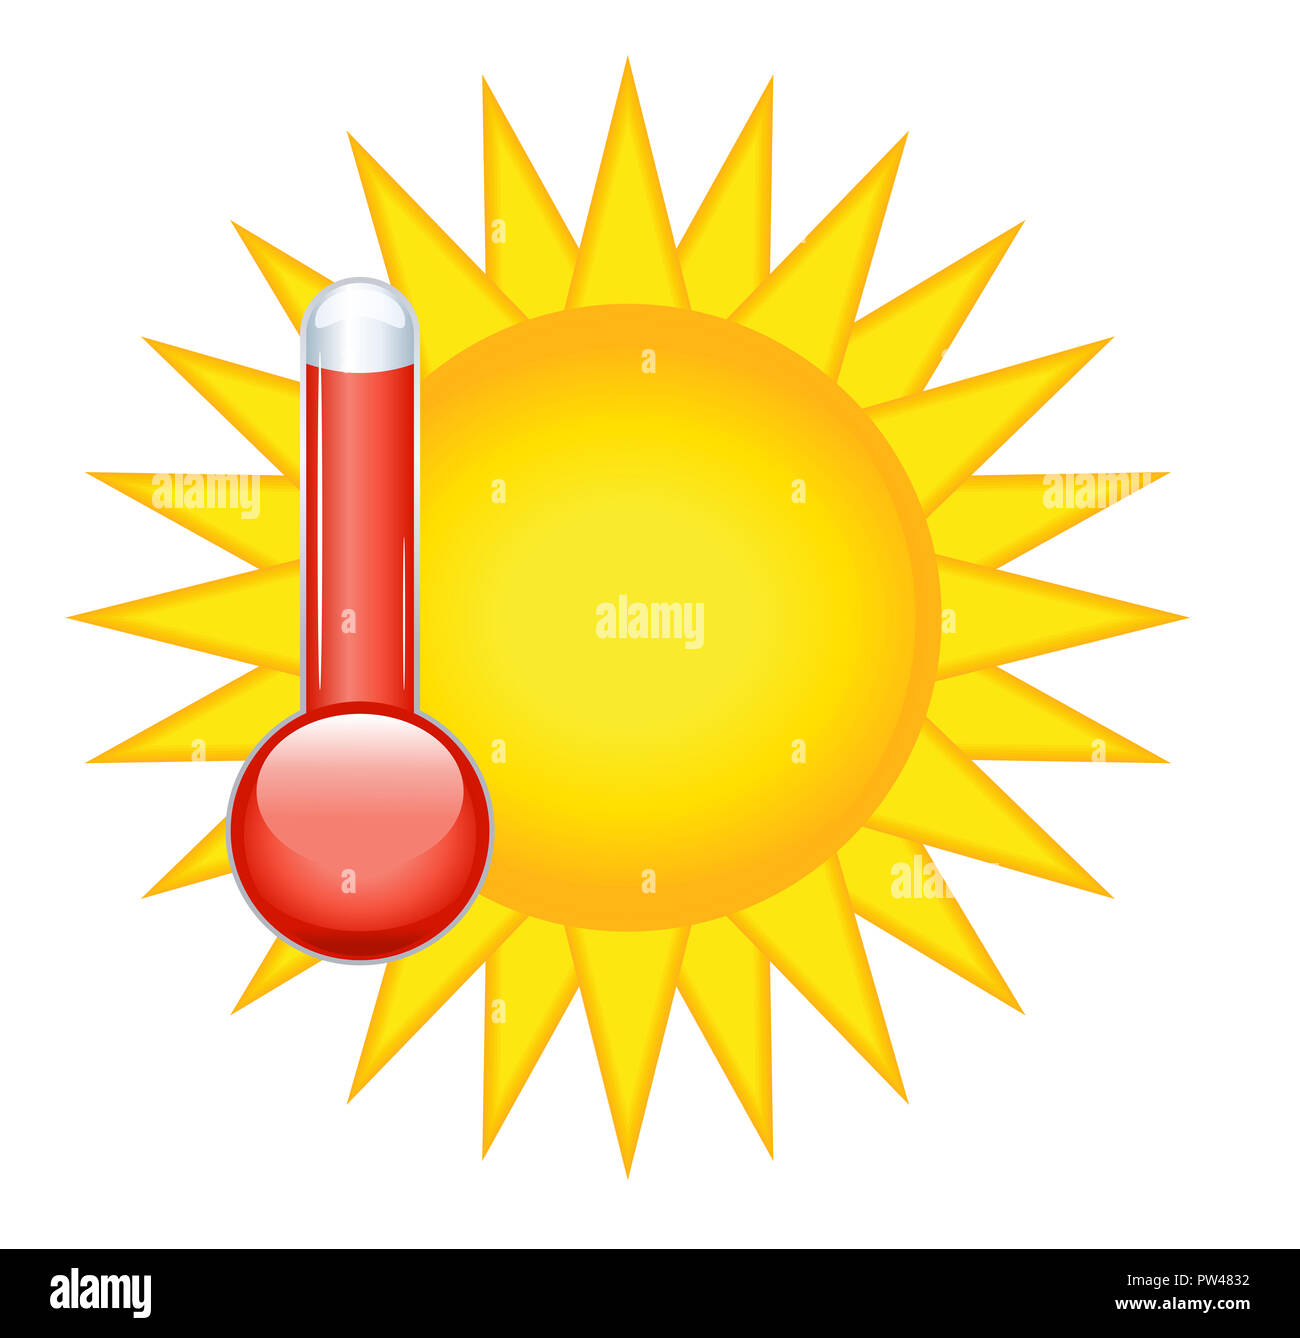 sunny weather climate summer temperature thermometer hot high illustration - Stock Image